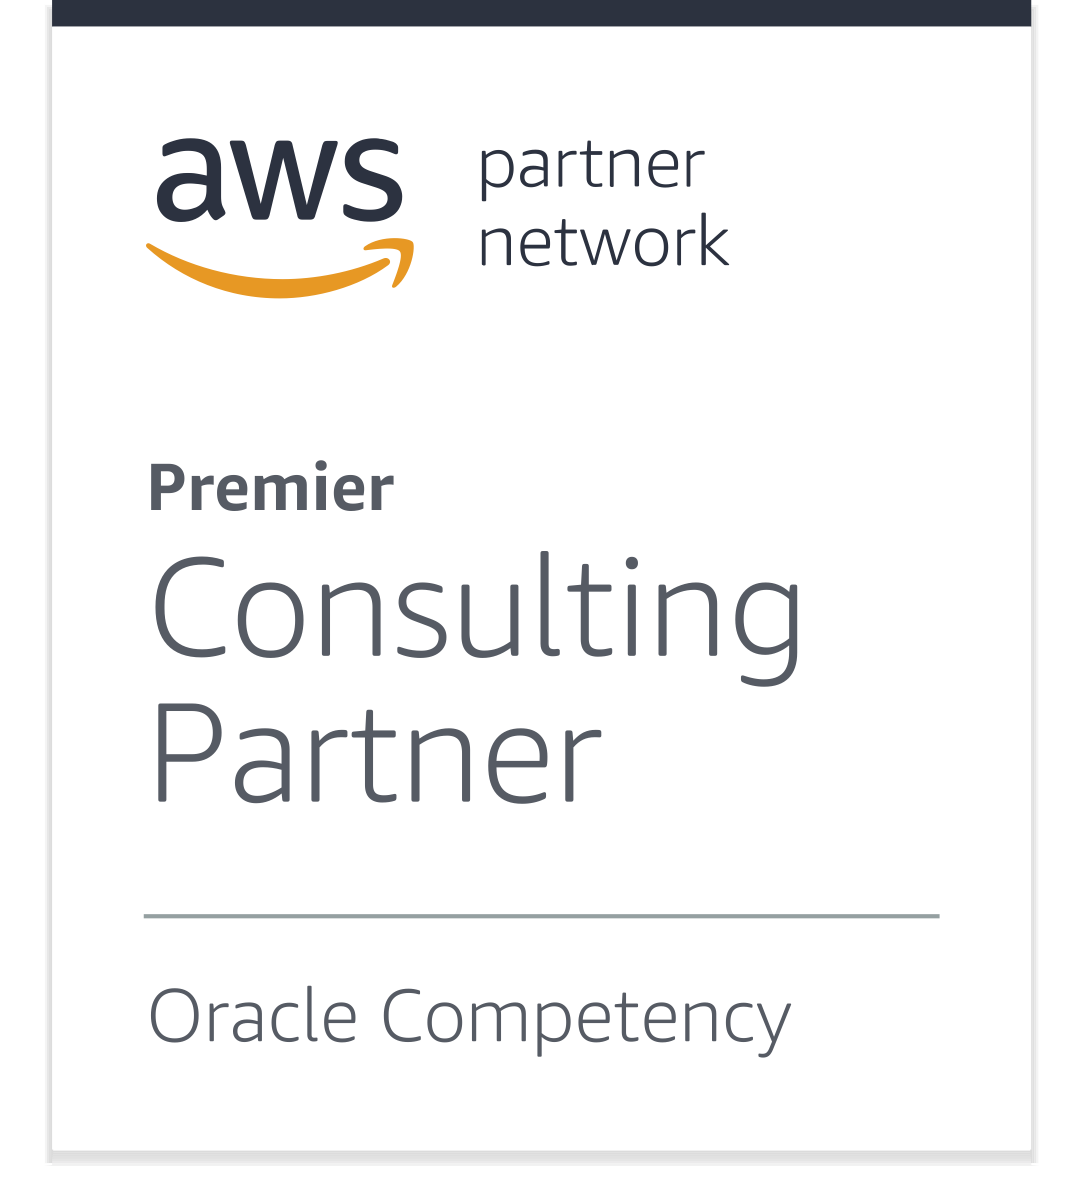 Oracle Competency